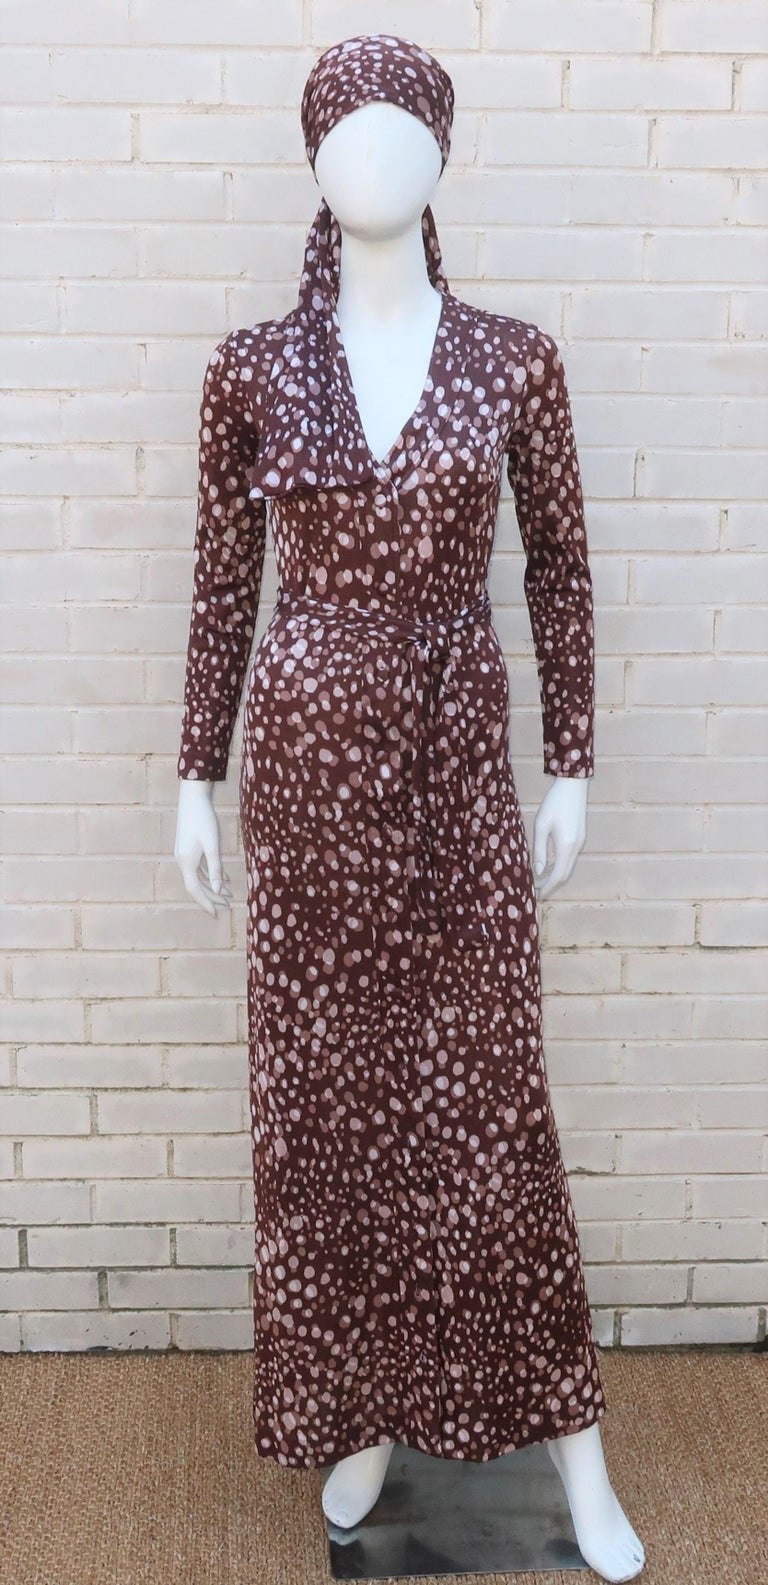 Early 1970's Diane Von Furstenberg maxi dress in a brown and ivory white abstract polka dot print.  The dress buttons all the way down the front with a coordinating sash belt and a scarf that can be worn at the neck or as a head wrap.  Originally